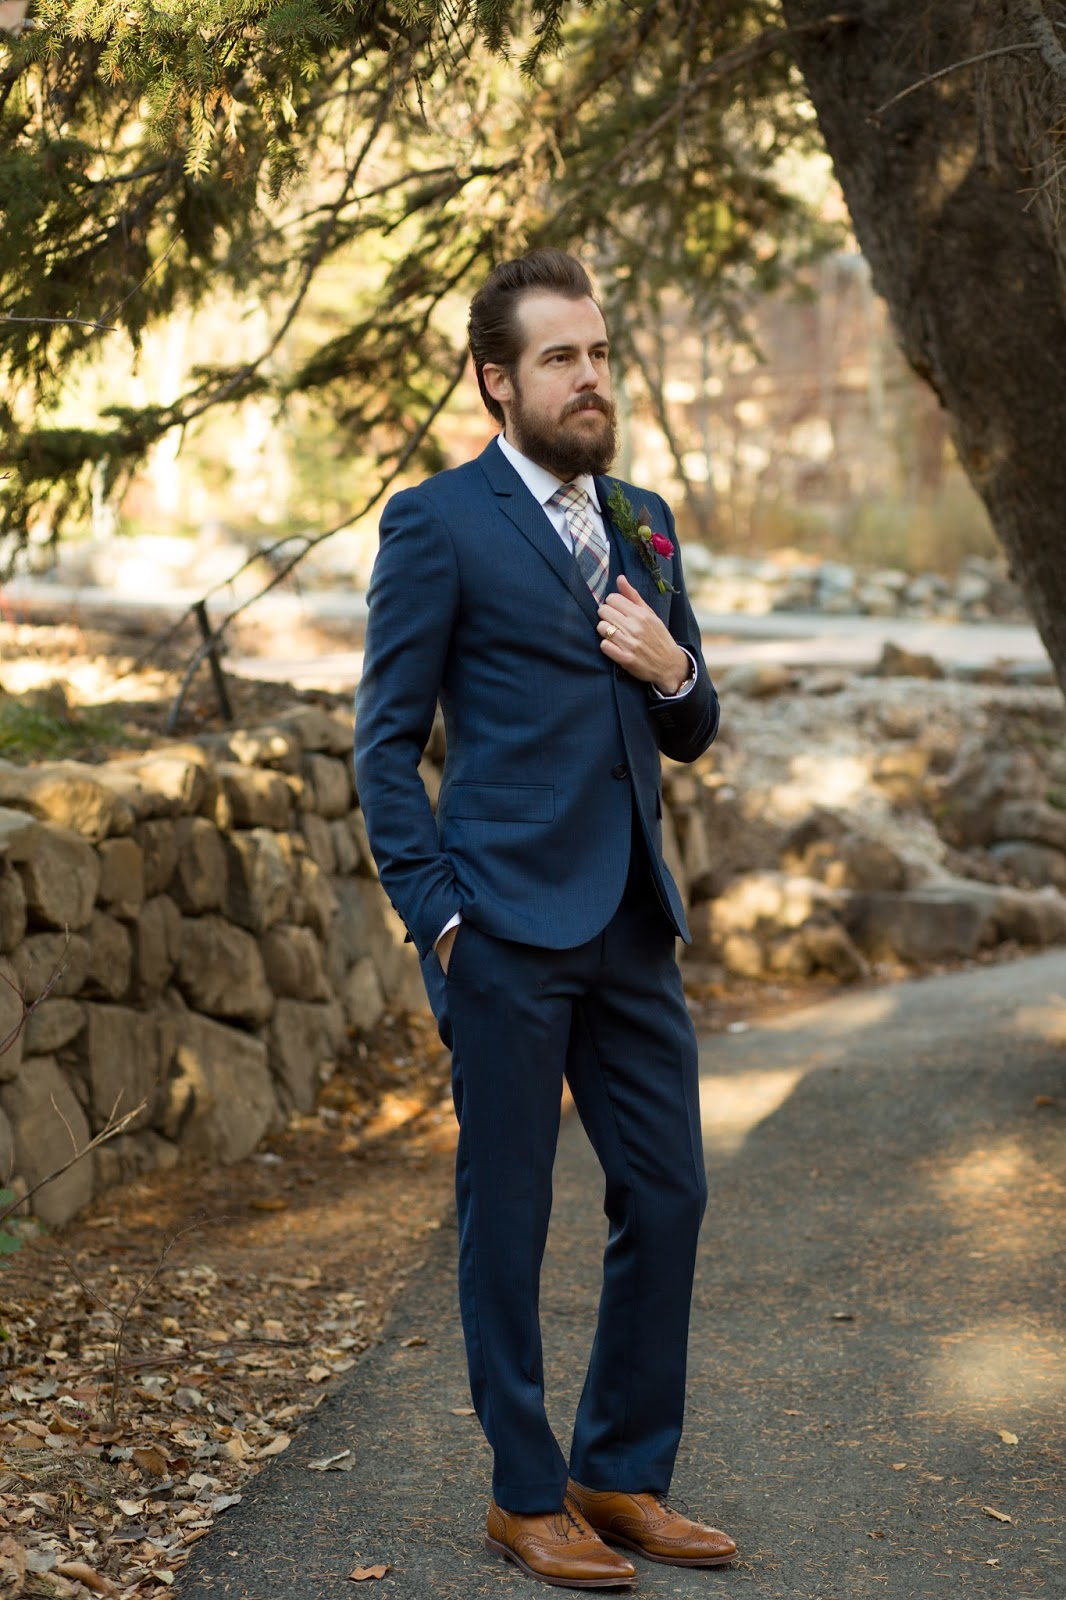 Menswear Idea for a wedding